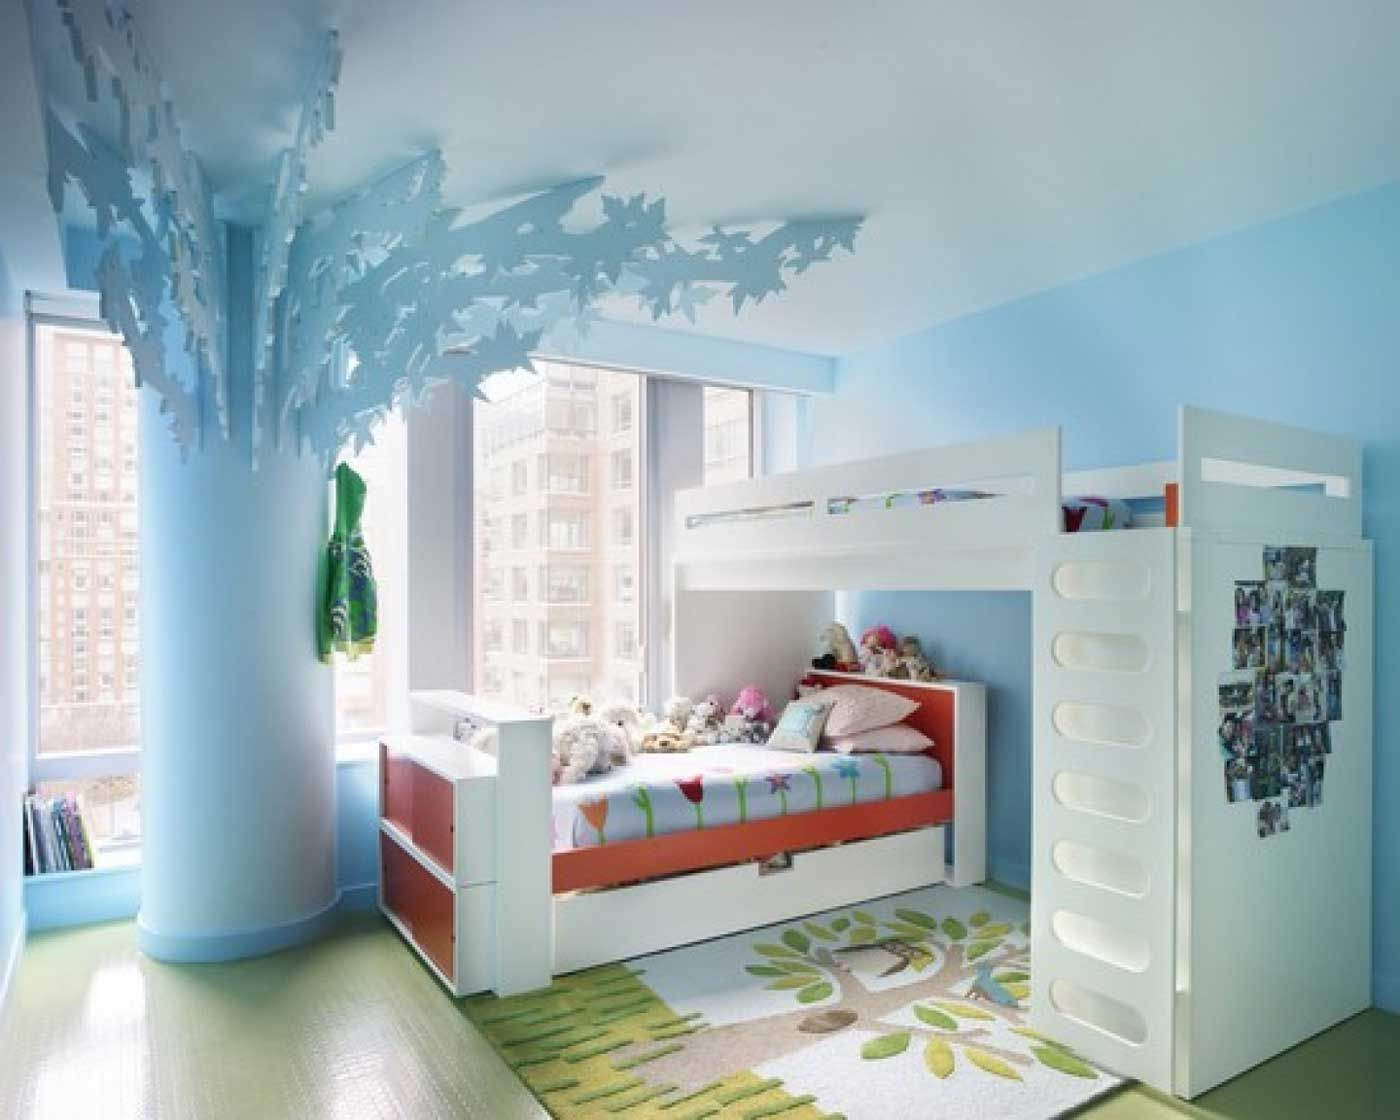 Bedroom Designs Kids Fascinating Cool Kids Room Ideas For Small Bedroom Designs With Creative White 2018